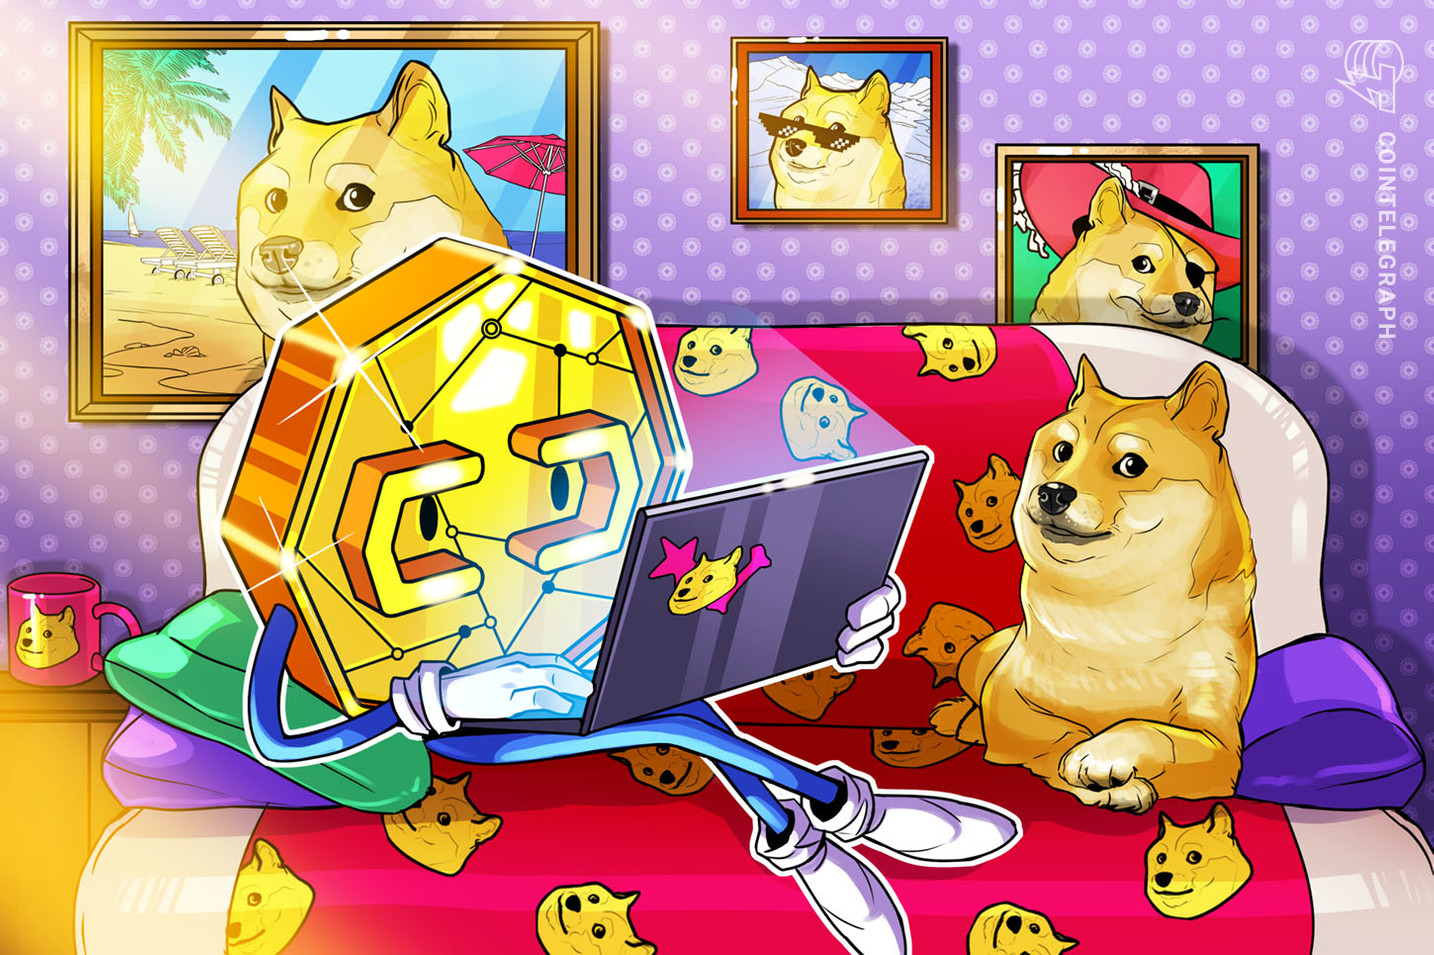 Hot DOGE nips at the heels of r/Bitcoin on Reddit